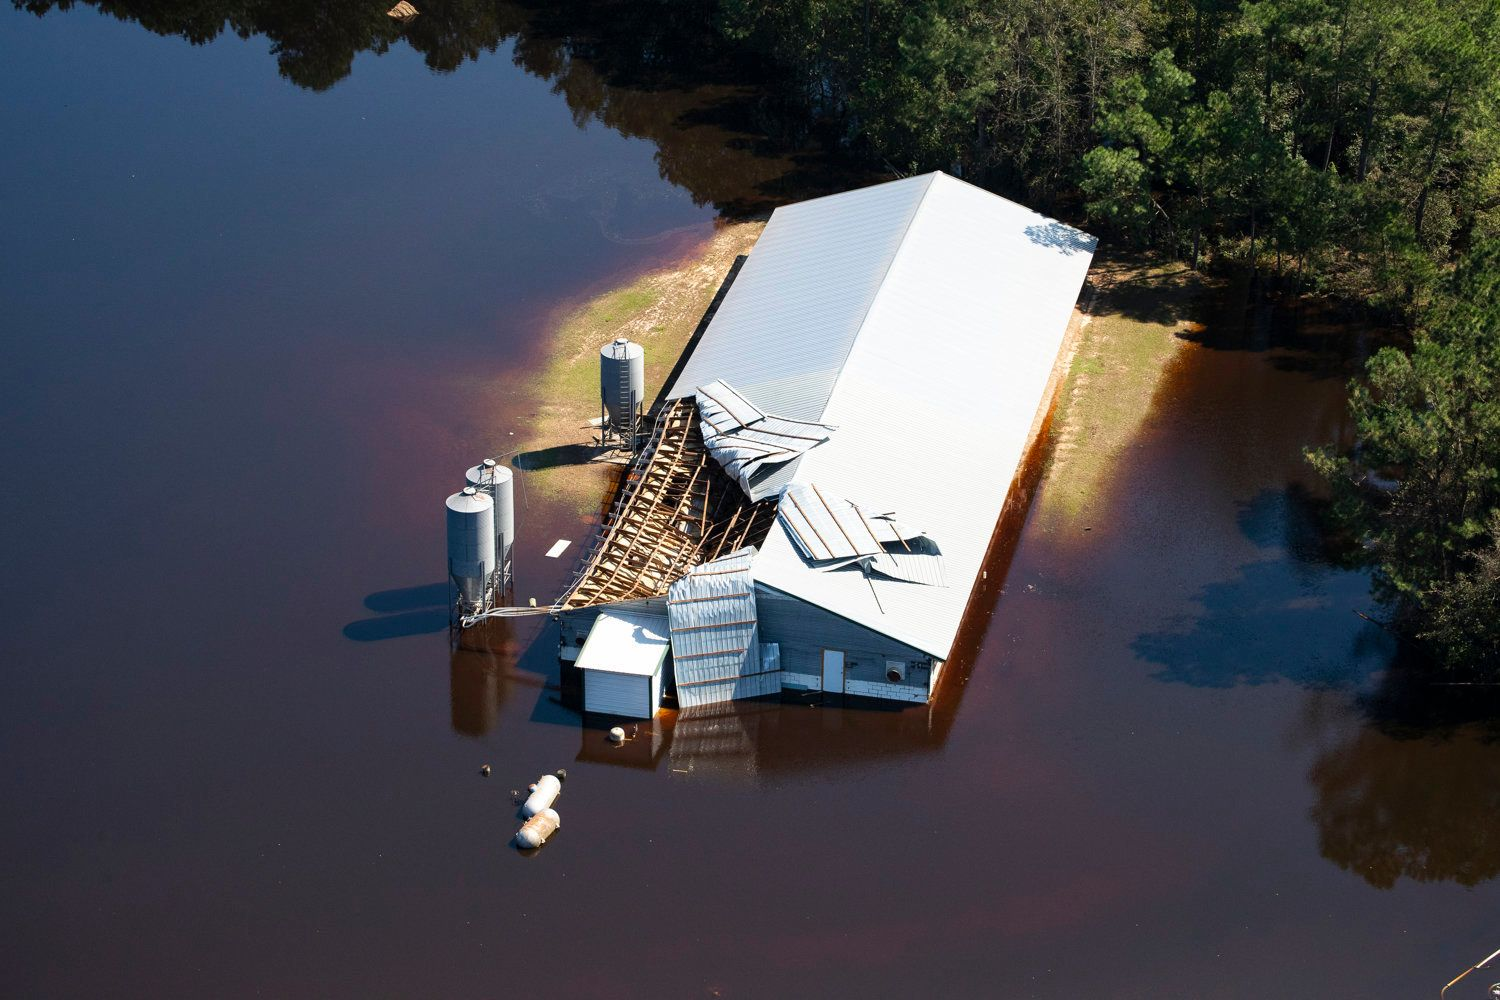 This image provided by Greenpeace shows adamaged structure on a hog farm surrounded by floodwaters in White Oak, North